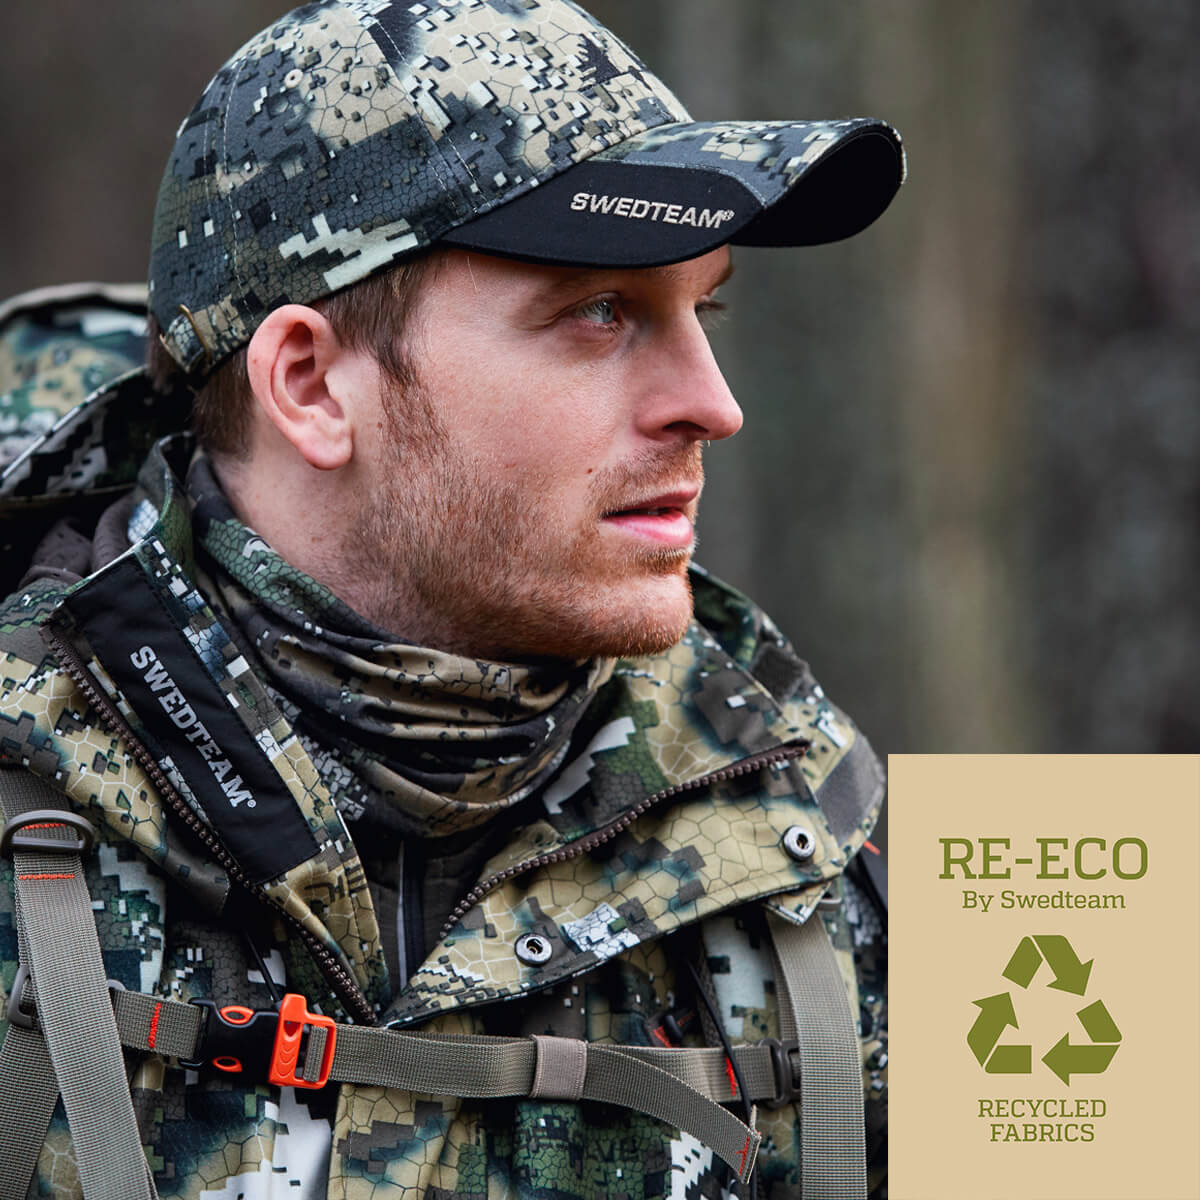 Hunter with the Swedteam Re-Eco collection